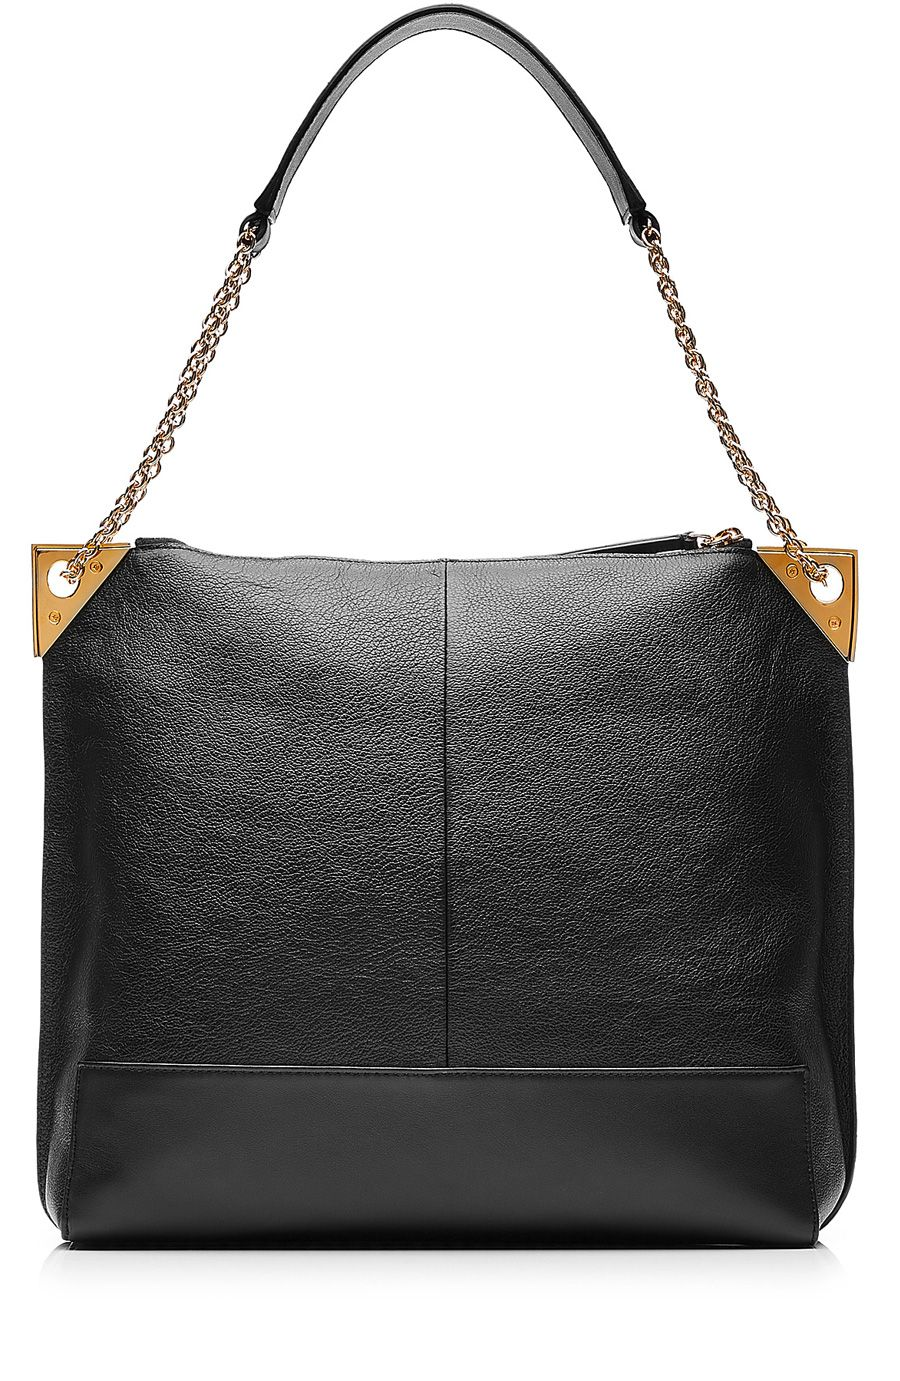 SEE BY CHLOÉ Leather Tote  JPY 48.191 JPY 33.670 (- 30%)